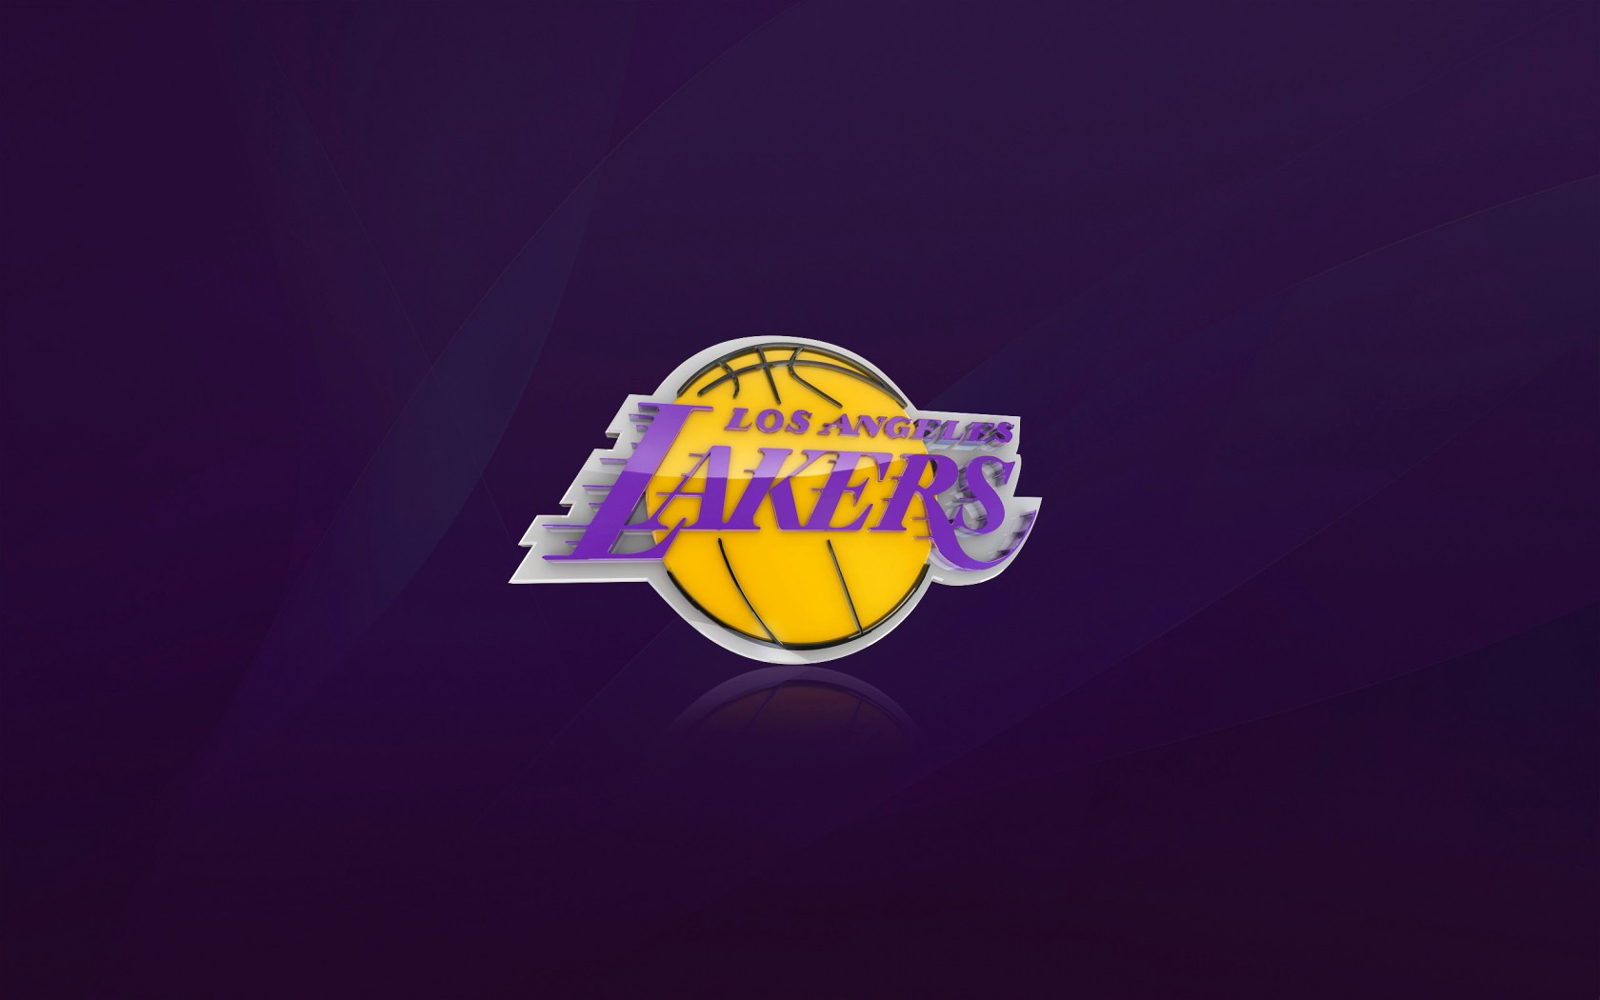 http://3.bp.blogspot.com/-7_j1yfT3wnk/UPiWm-VvuVI/AAAAAAAAKEc/RiJgbI-6lmU/s1600/Los_Angeles_Lakers_2013_Logo_NBA_USA_Hd_Desktop_Wallpaper_citiesandteams.blogspot.com.jpg